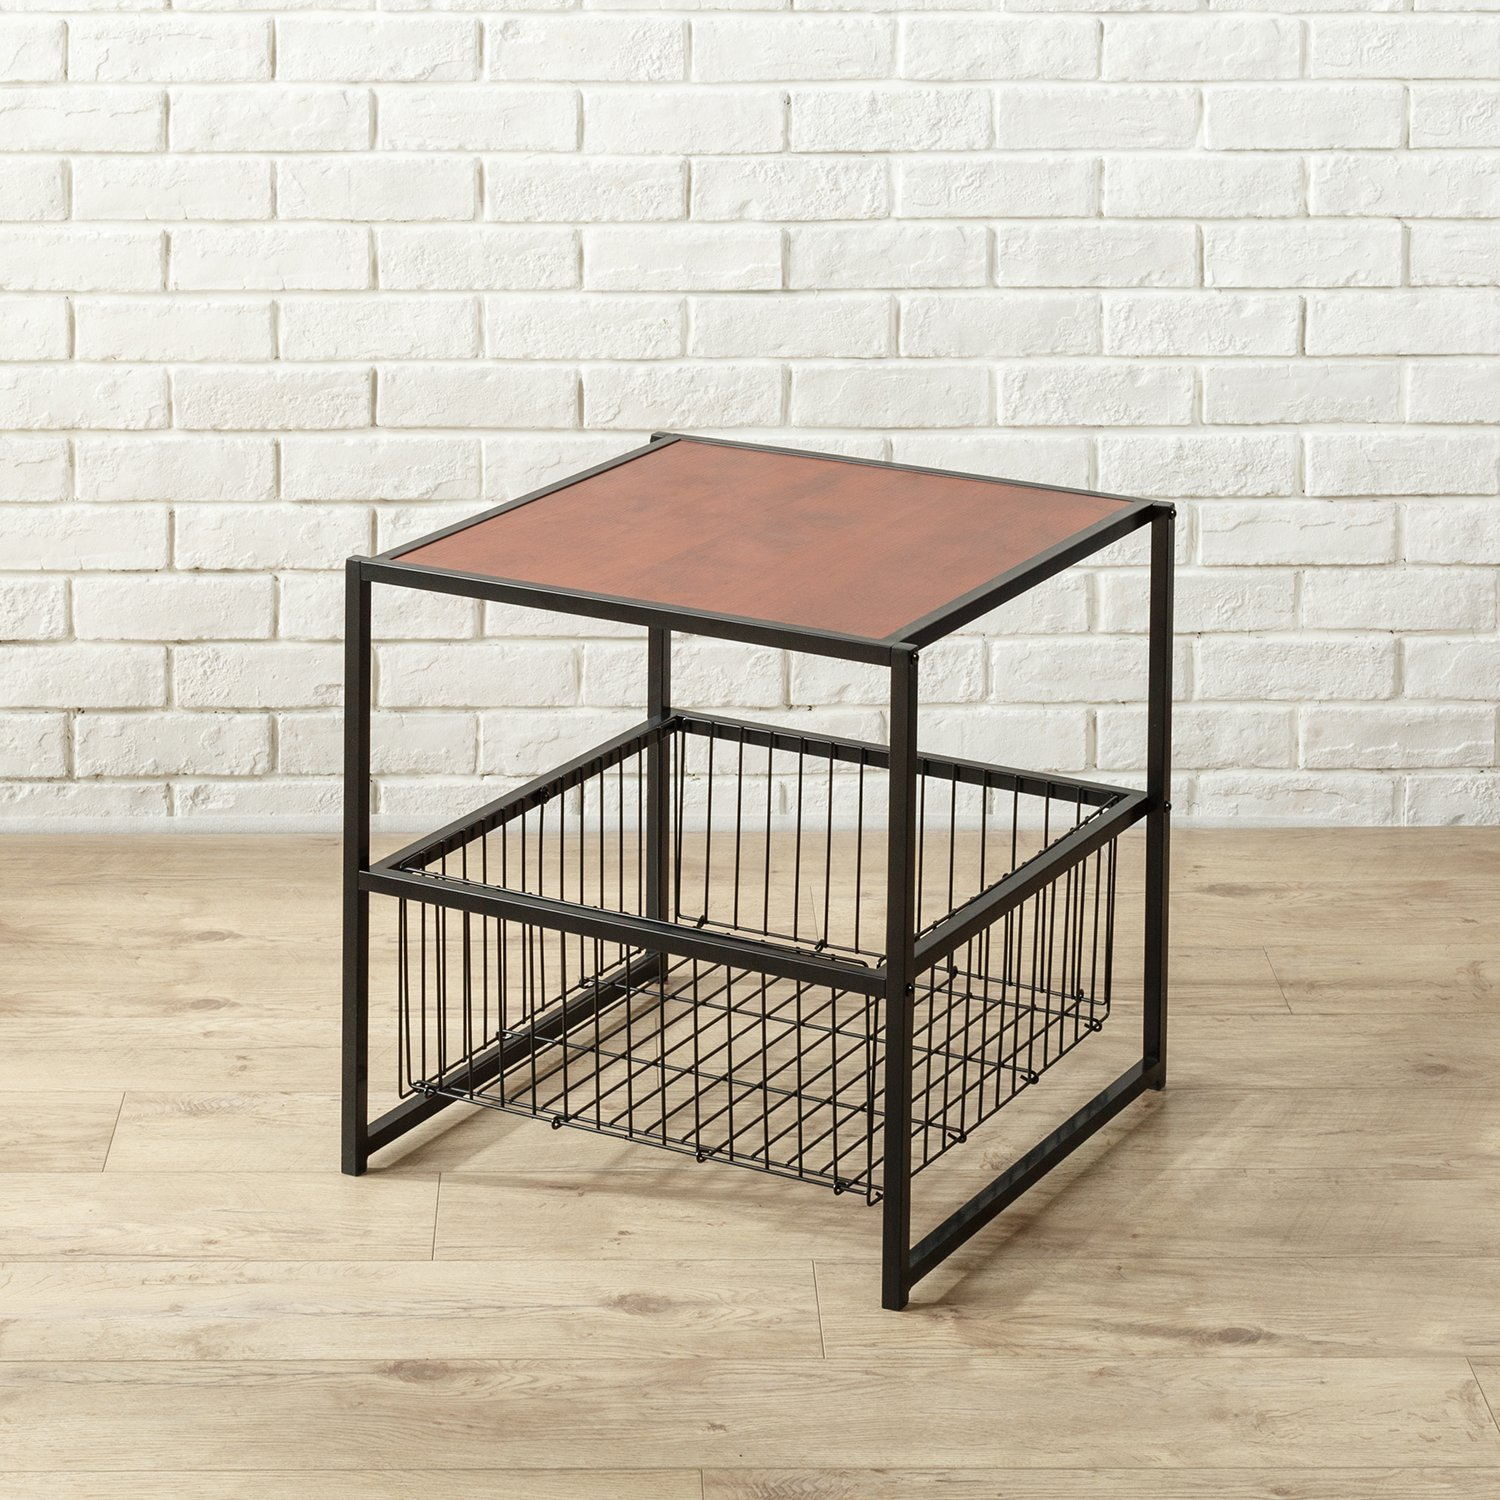 zinus dane modern studio collection inch deluxe side wire basket accent table end coffee night stand with metal storage kitchen dining wood and tables black patio umbrella high